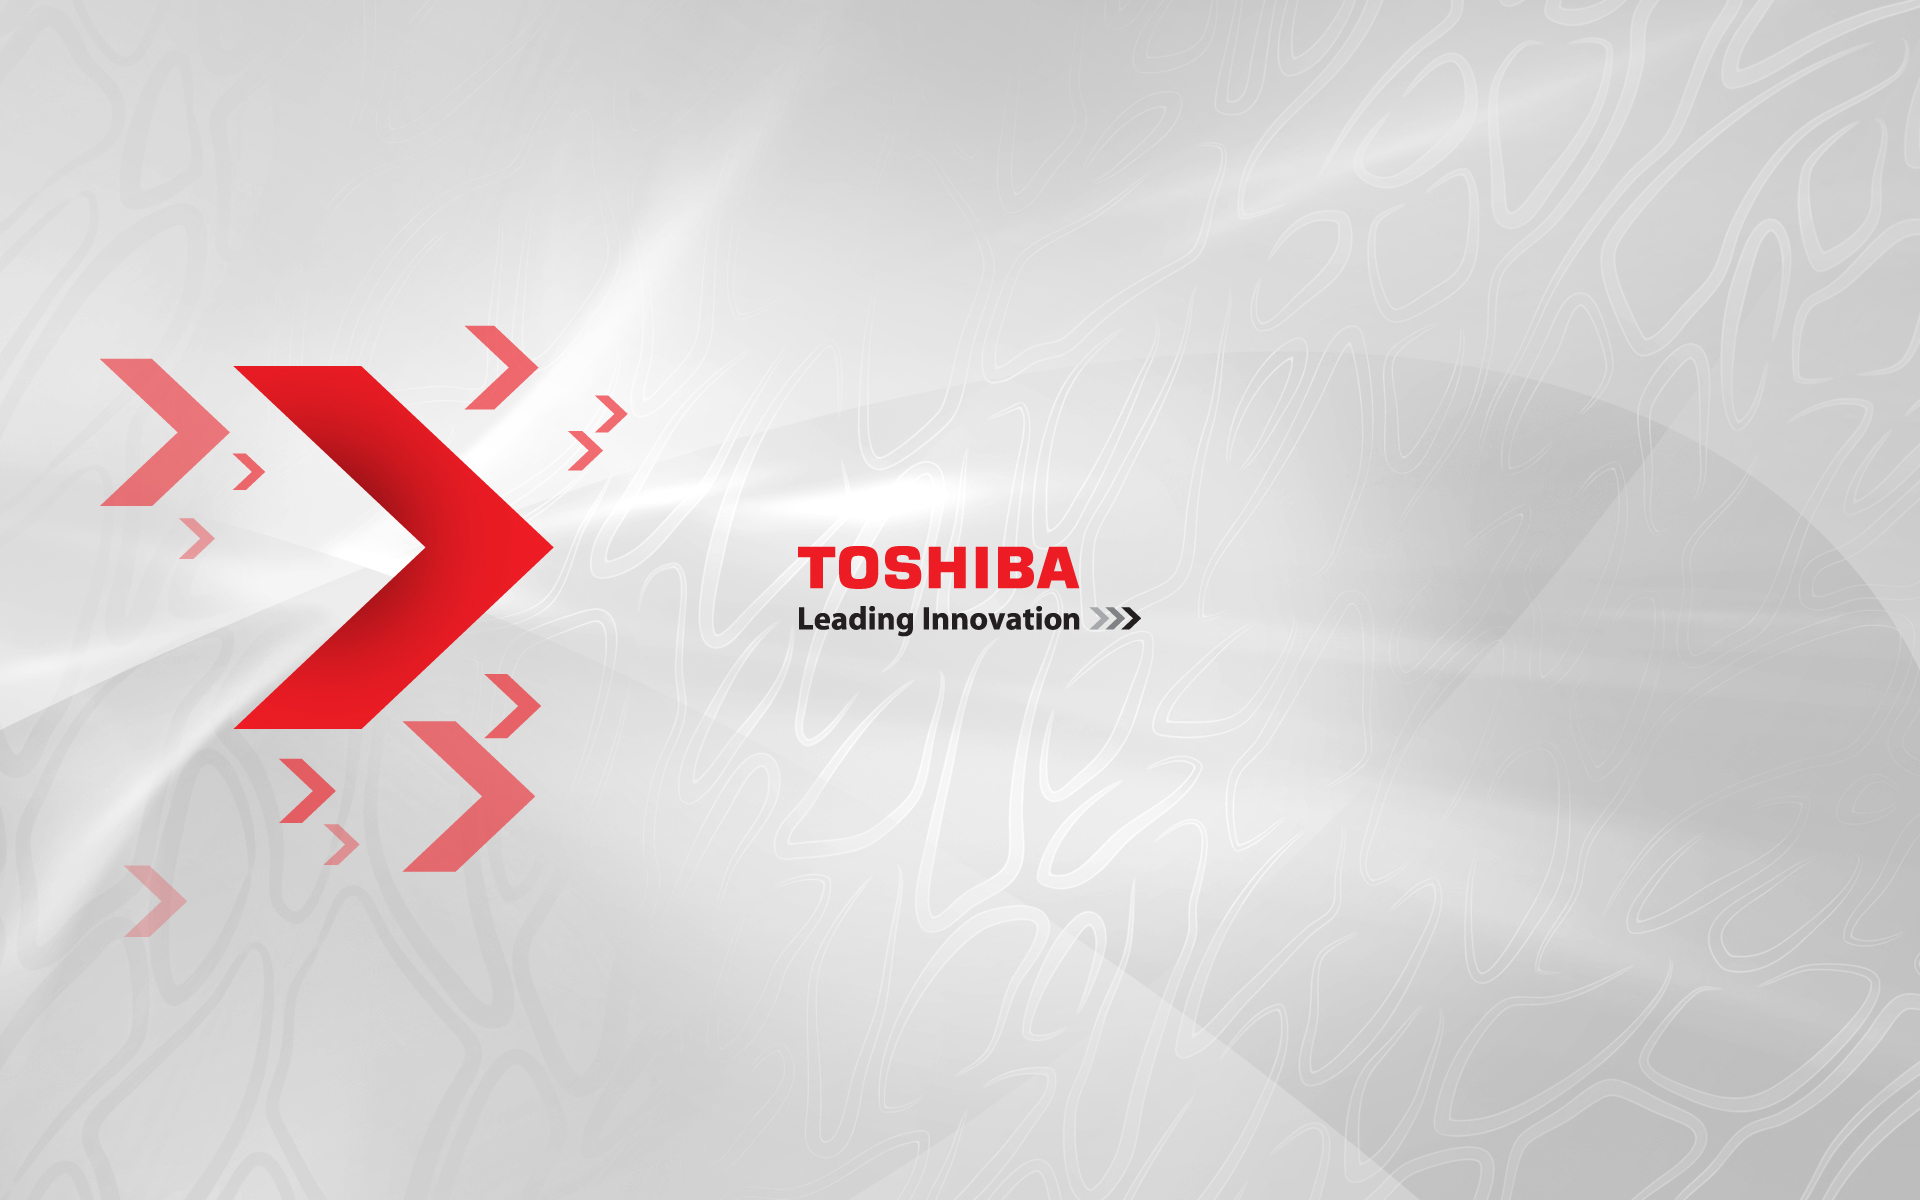 Toshiba Windows  Wallpaper   1920x1200